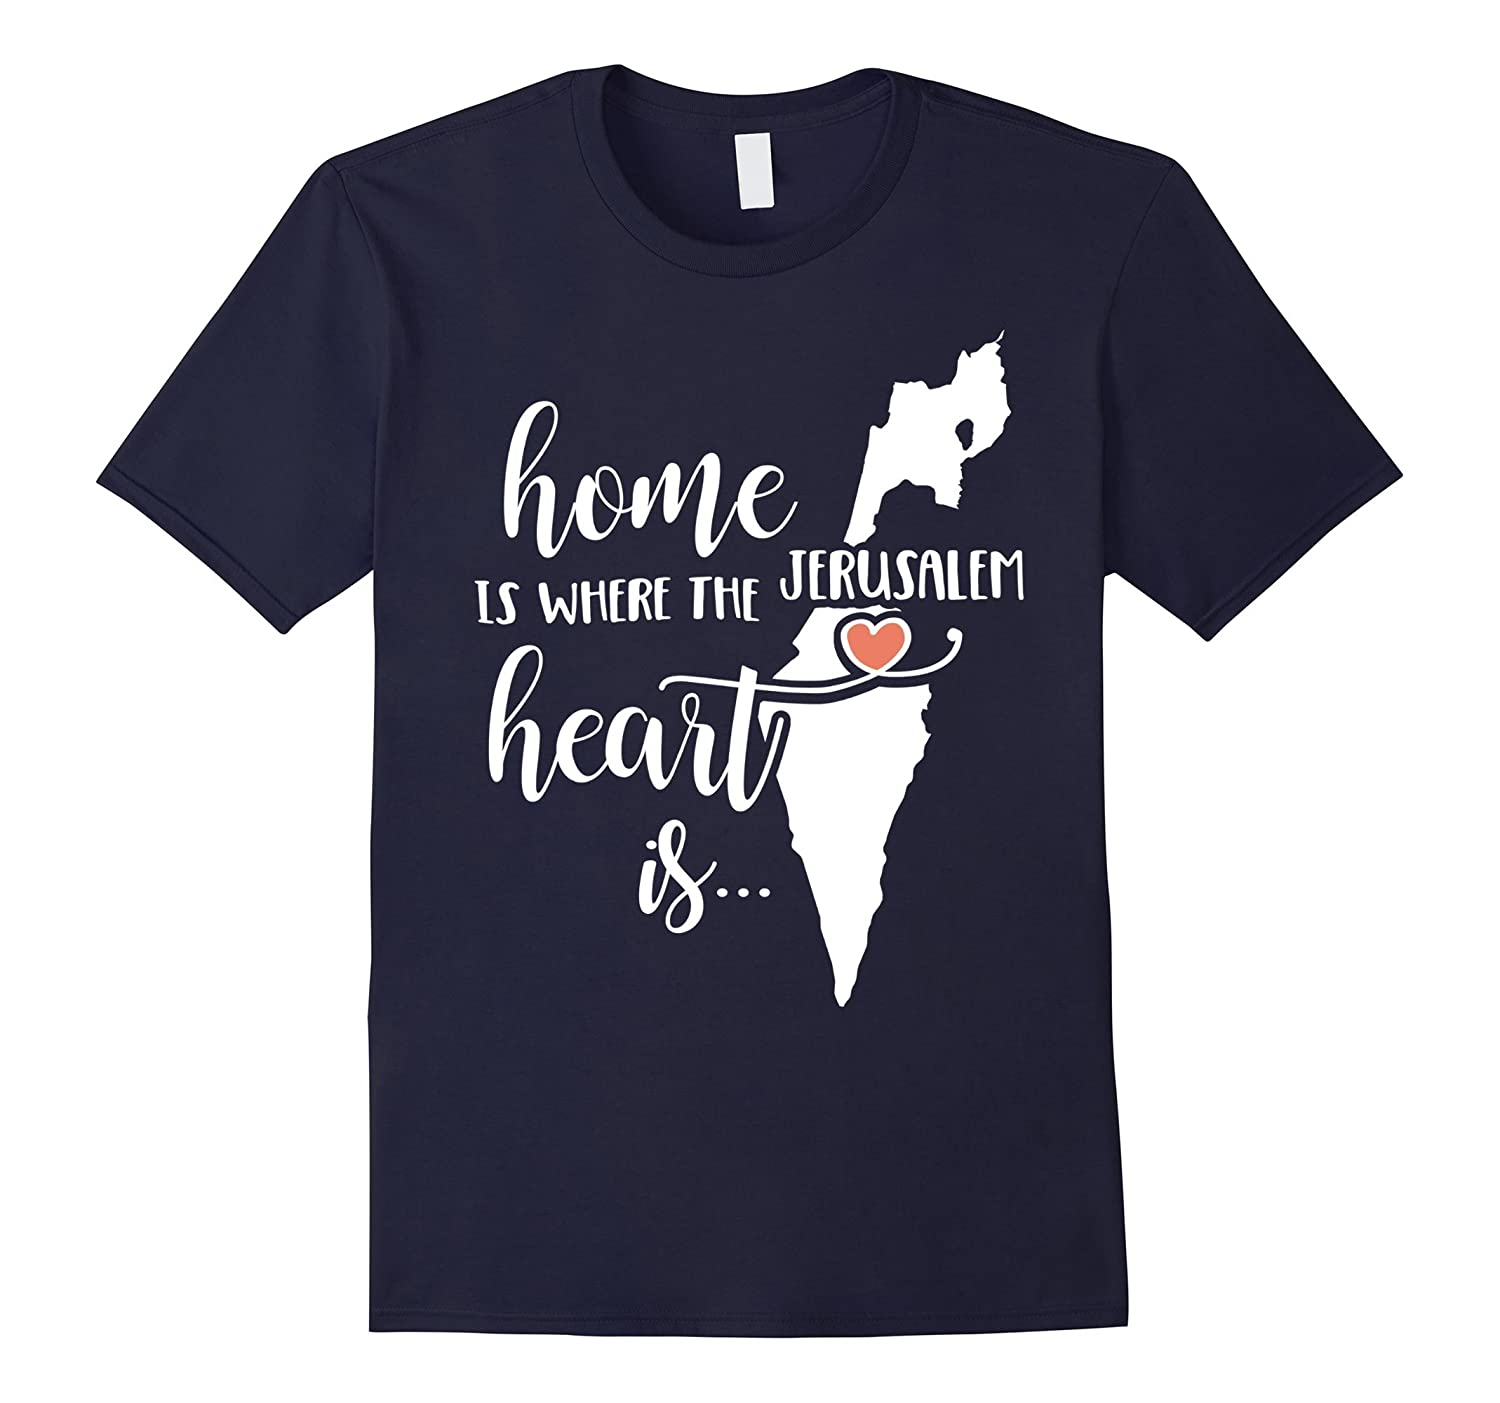 Jerusalem T-Shirt - Home is Where the Heart Is!-T-Shirt